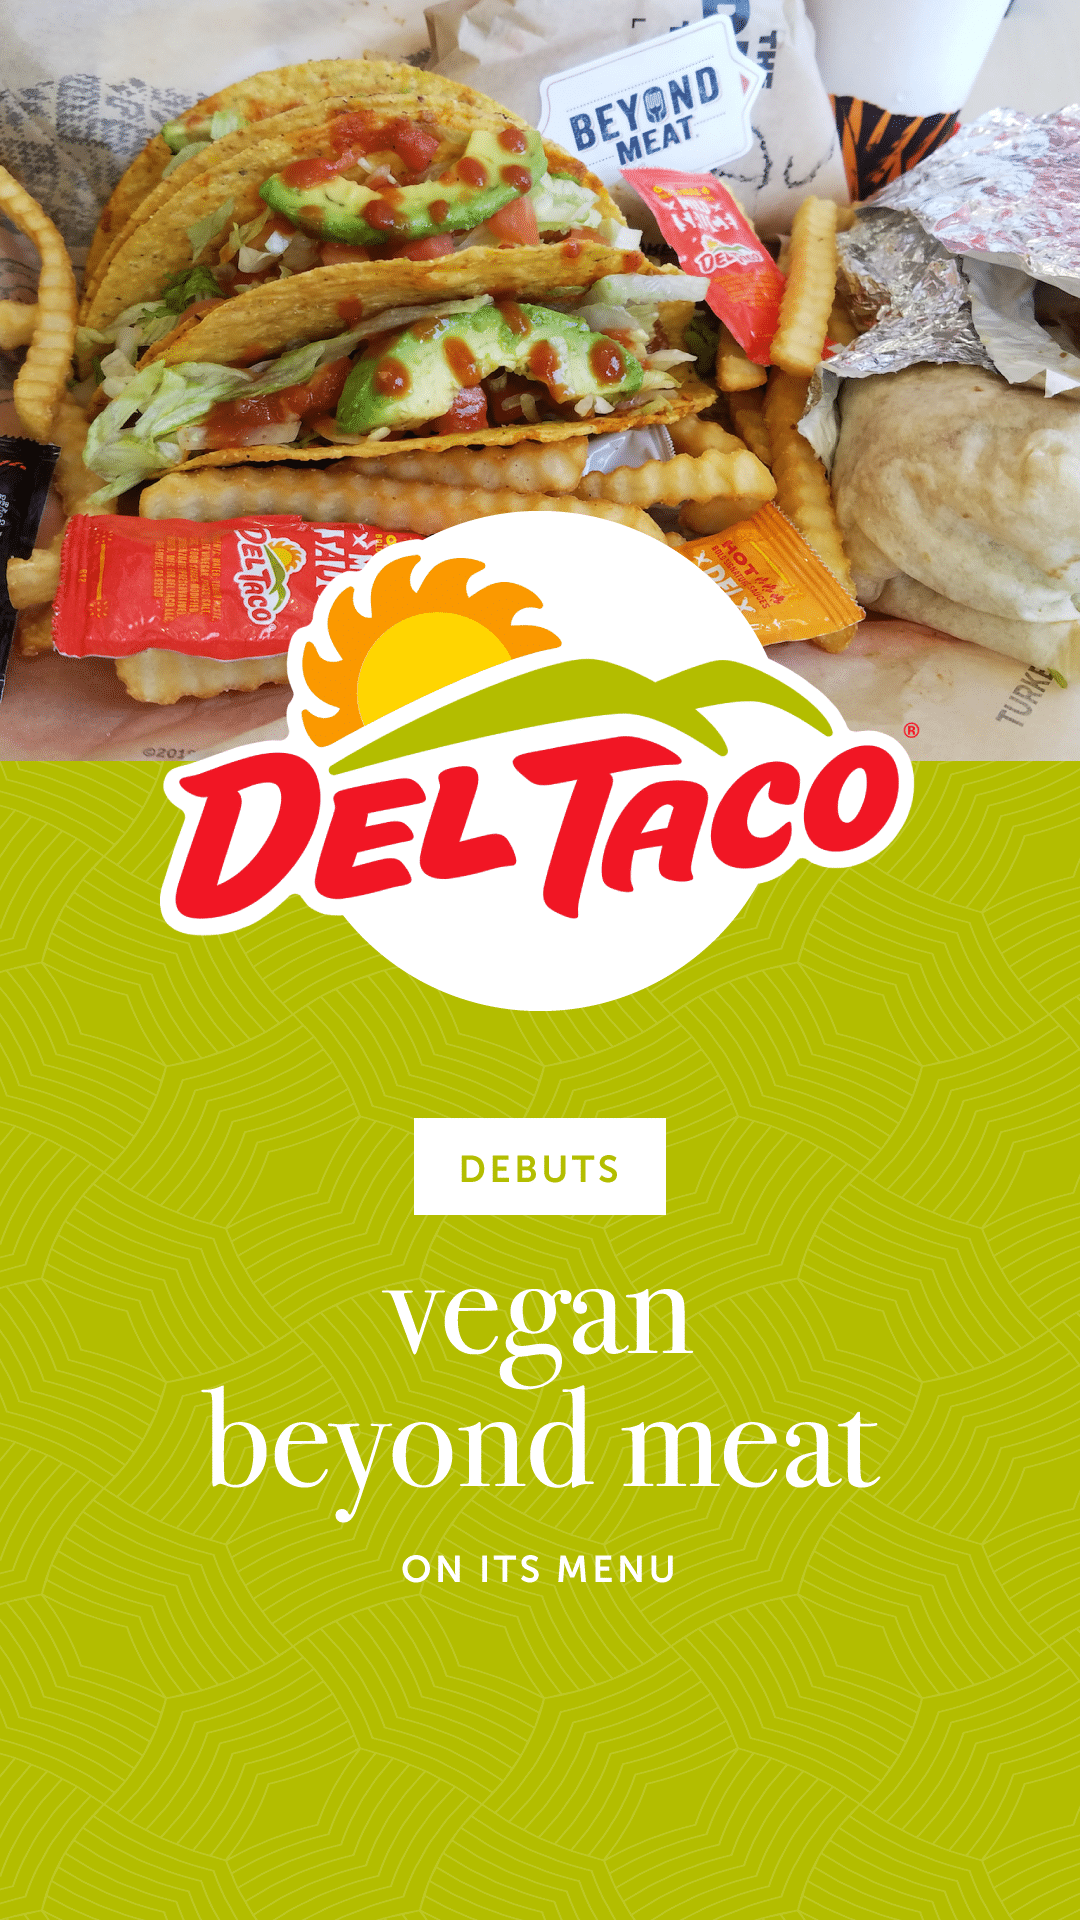 Del Taco Debuts Vegan Beyond Meat on Its Menu